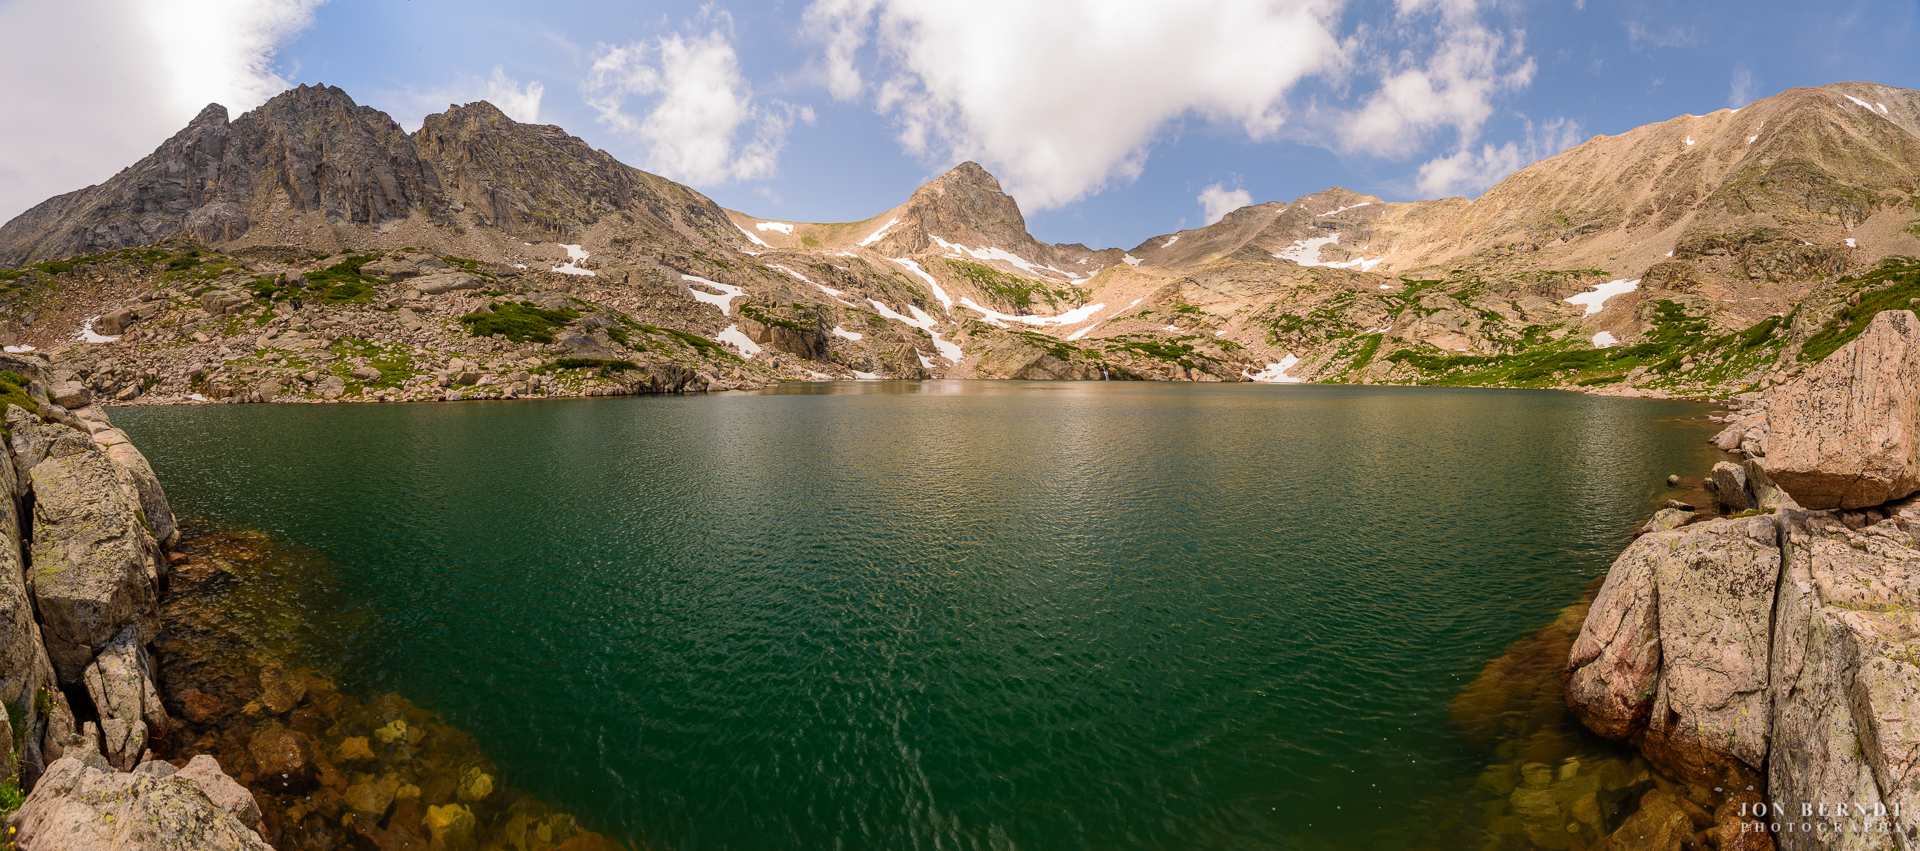 Blue Lake in the Indian Peaks Wilderness of Colorado. This alpine lake is located at an elevation just shy of 11500 feet (3500 meters) above sea level.(C) 2017 Jon Berndt Photography